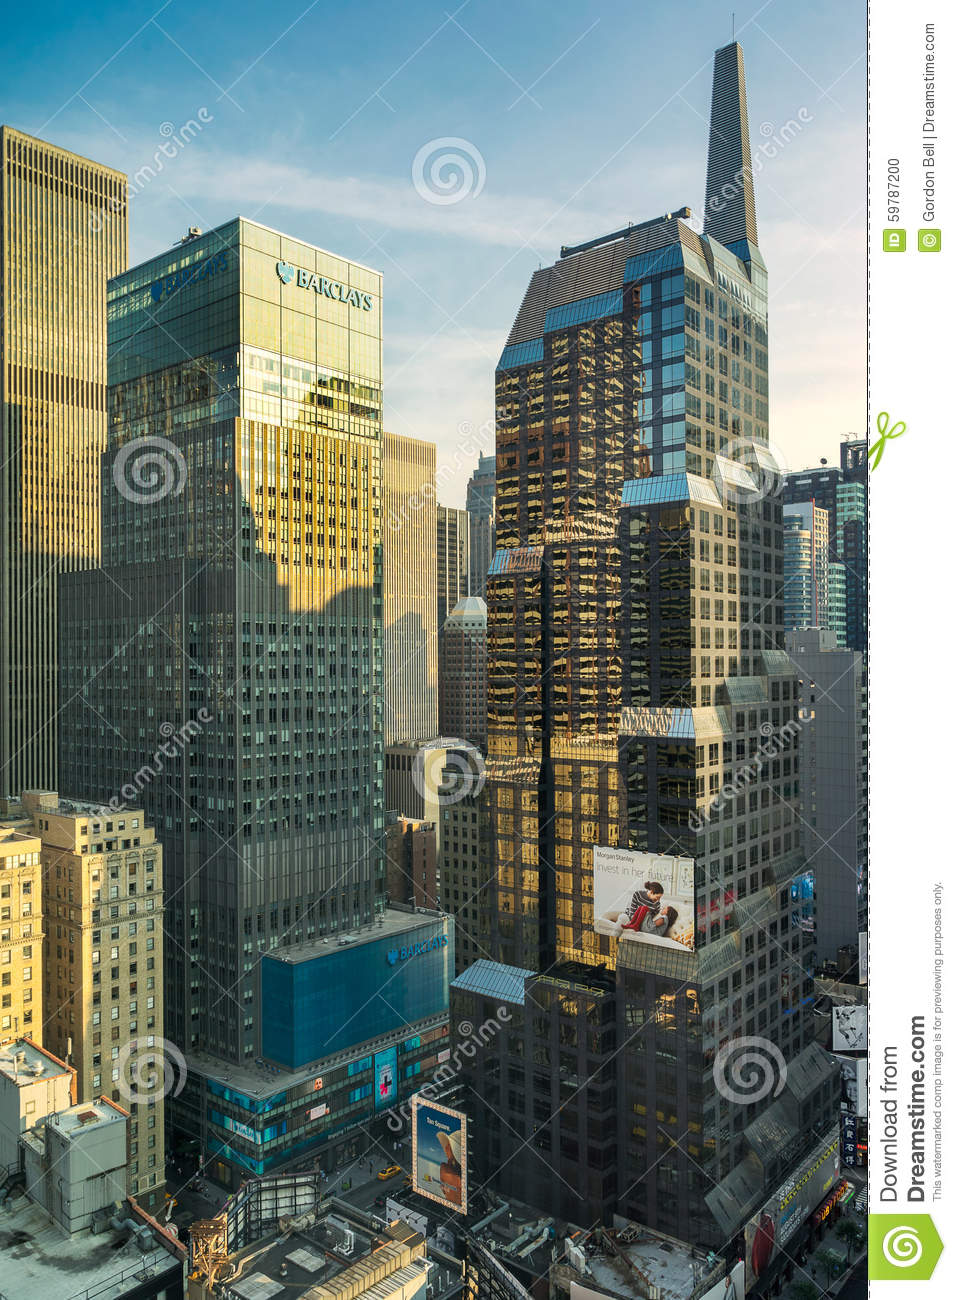 Morgan Stanley New York Head Office Editorial Image - Image